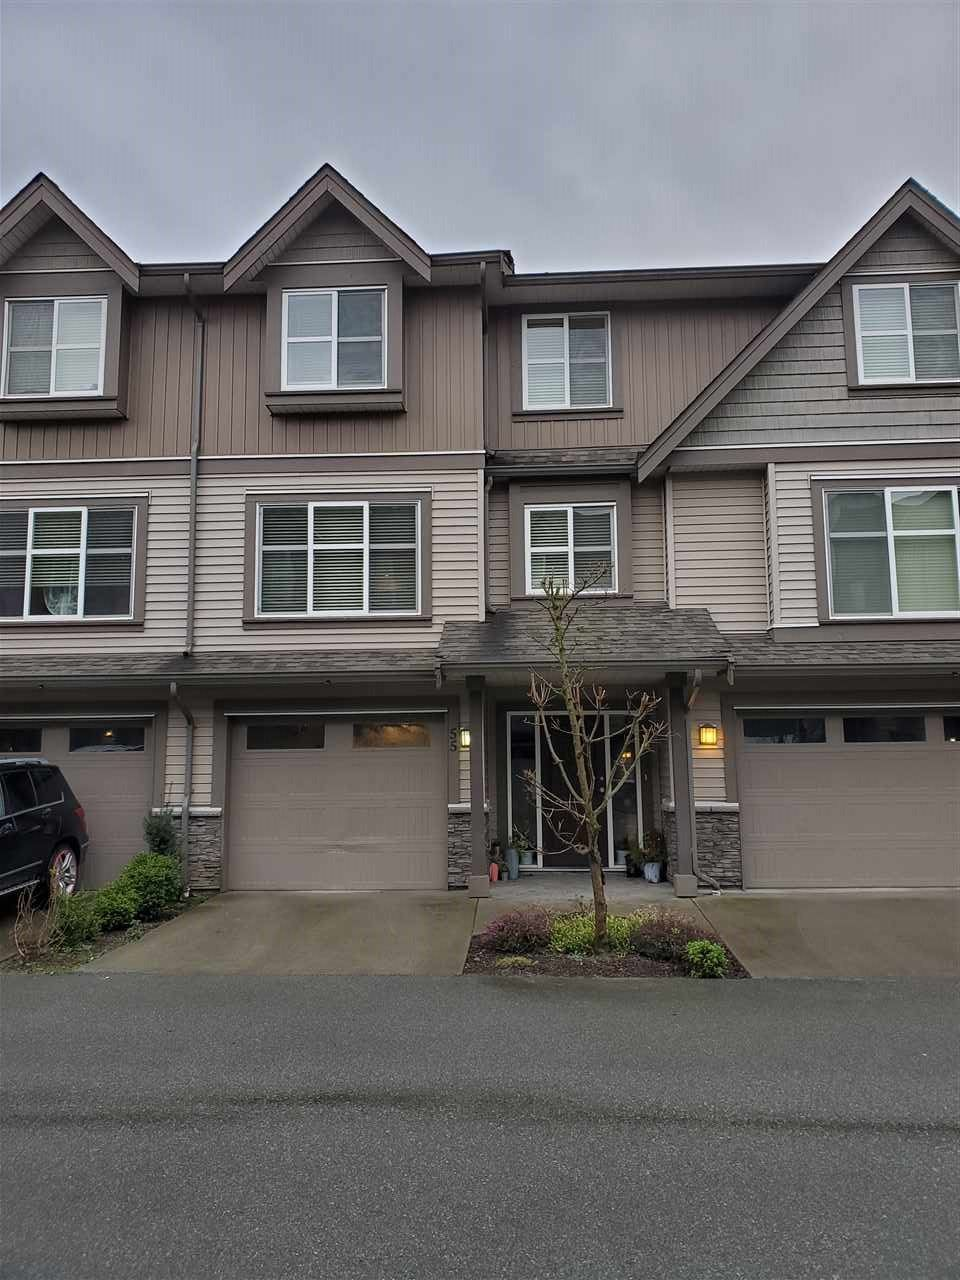 "Main Photo: 55 45085 WOLFE Road in Chilliwack: Chilliwack W Young-Well Townhouse for sale in ""Townsend Terrace"" : MLS®# R2534453"